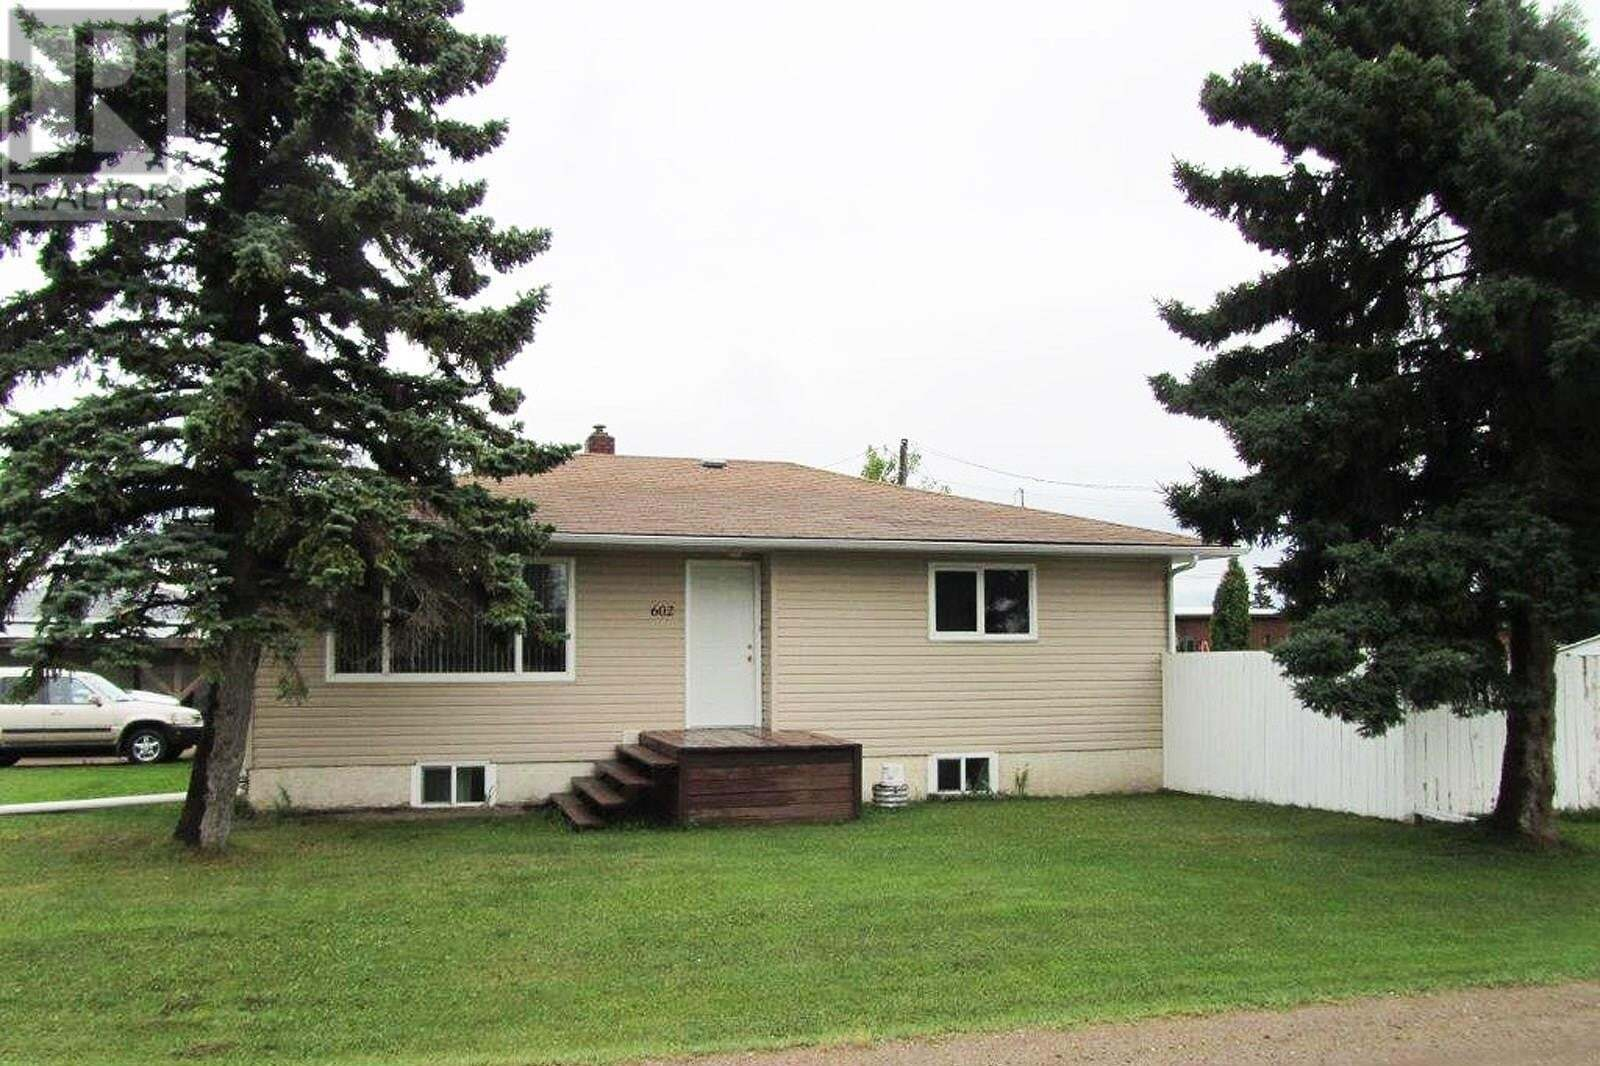 House for sale at 602 Sergent Ave Meadow Lake Saskatchewan - MLS: SK823683